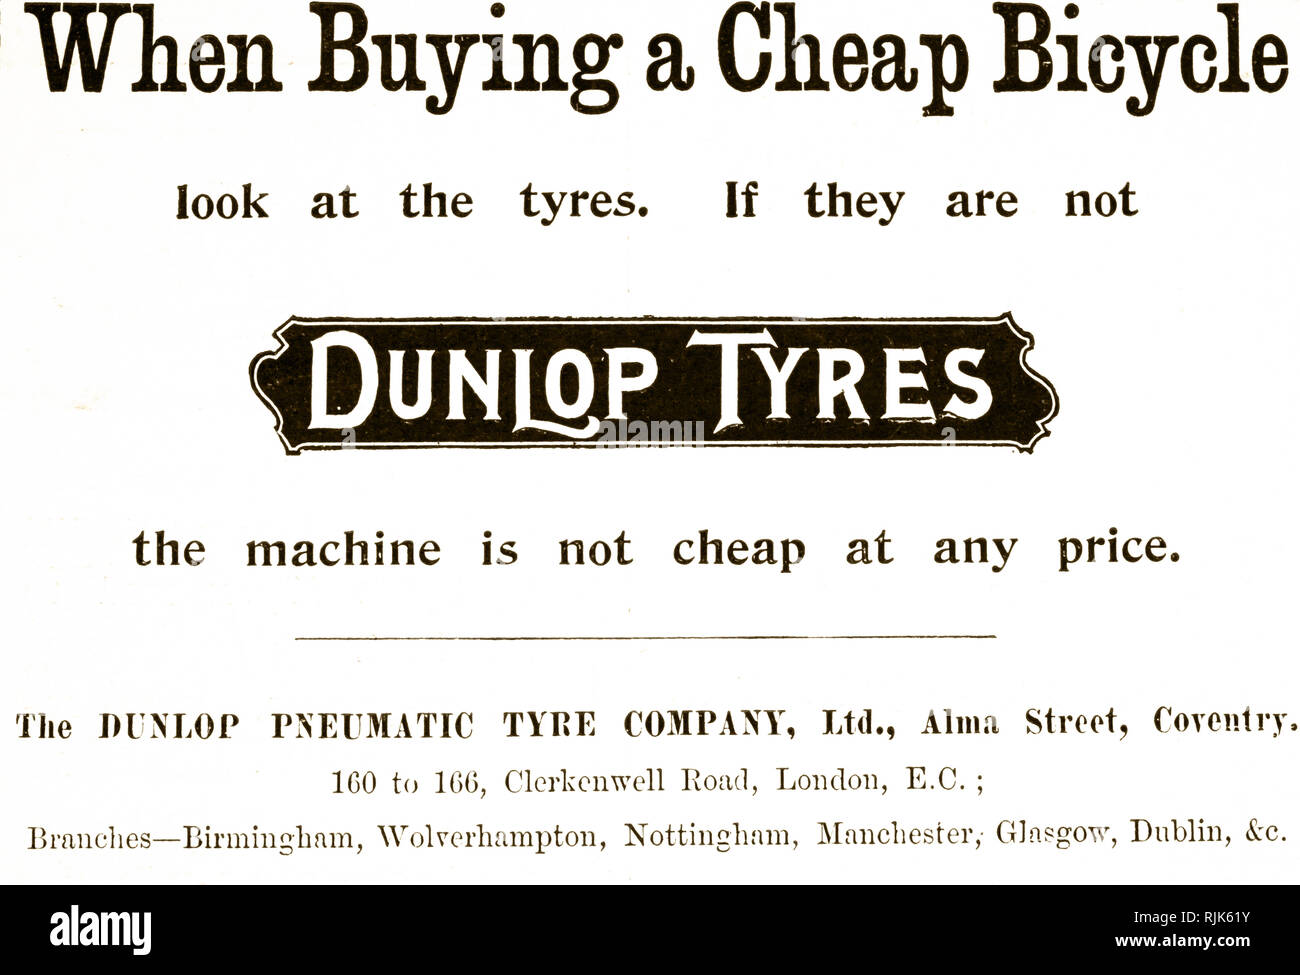 Advertisement for Dunlop Tyres. Dated 20th century - Stock Image